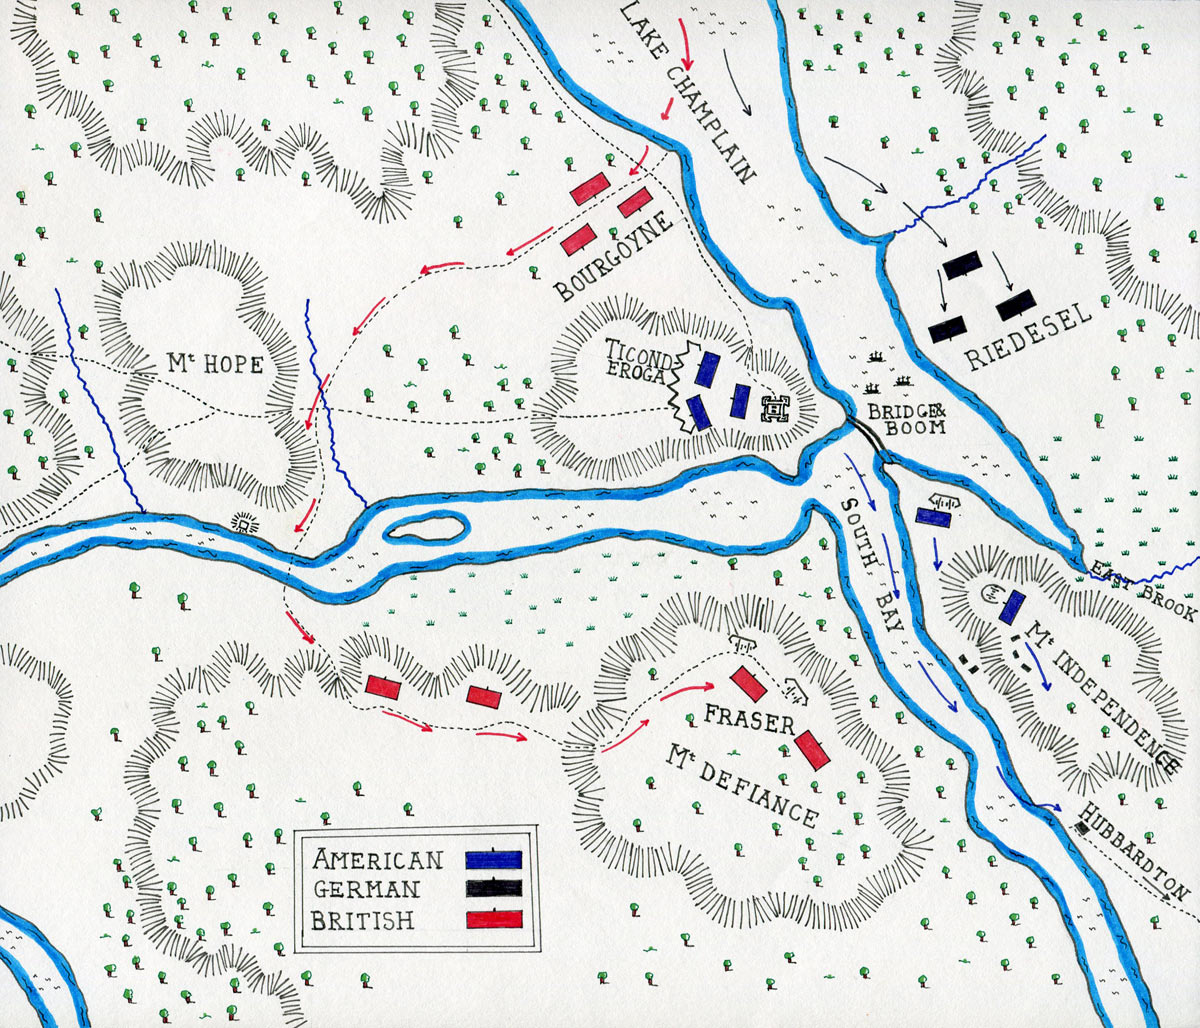 Battle Of Fort Ticonderoga - Battle of saratoga us maps